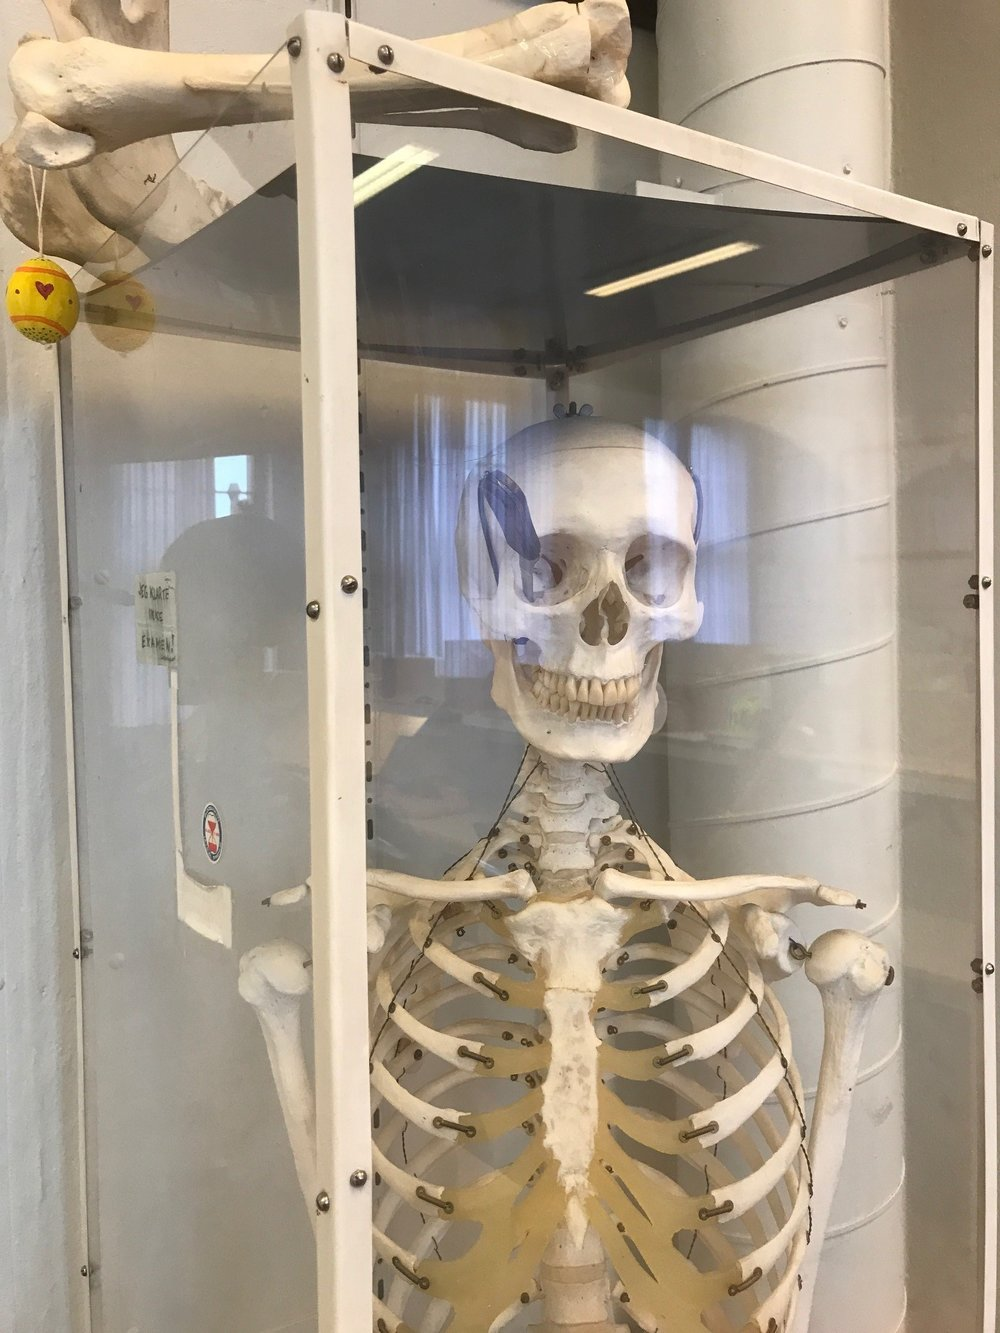 """Some of the decoration in the new study hall. The note on the side of the glass says """"I failed the exam"""", and he has a knife in his eye, so that bodes well for the second year!"""